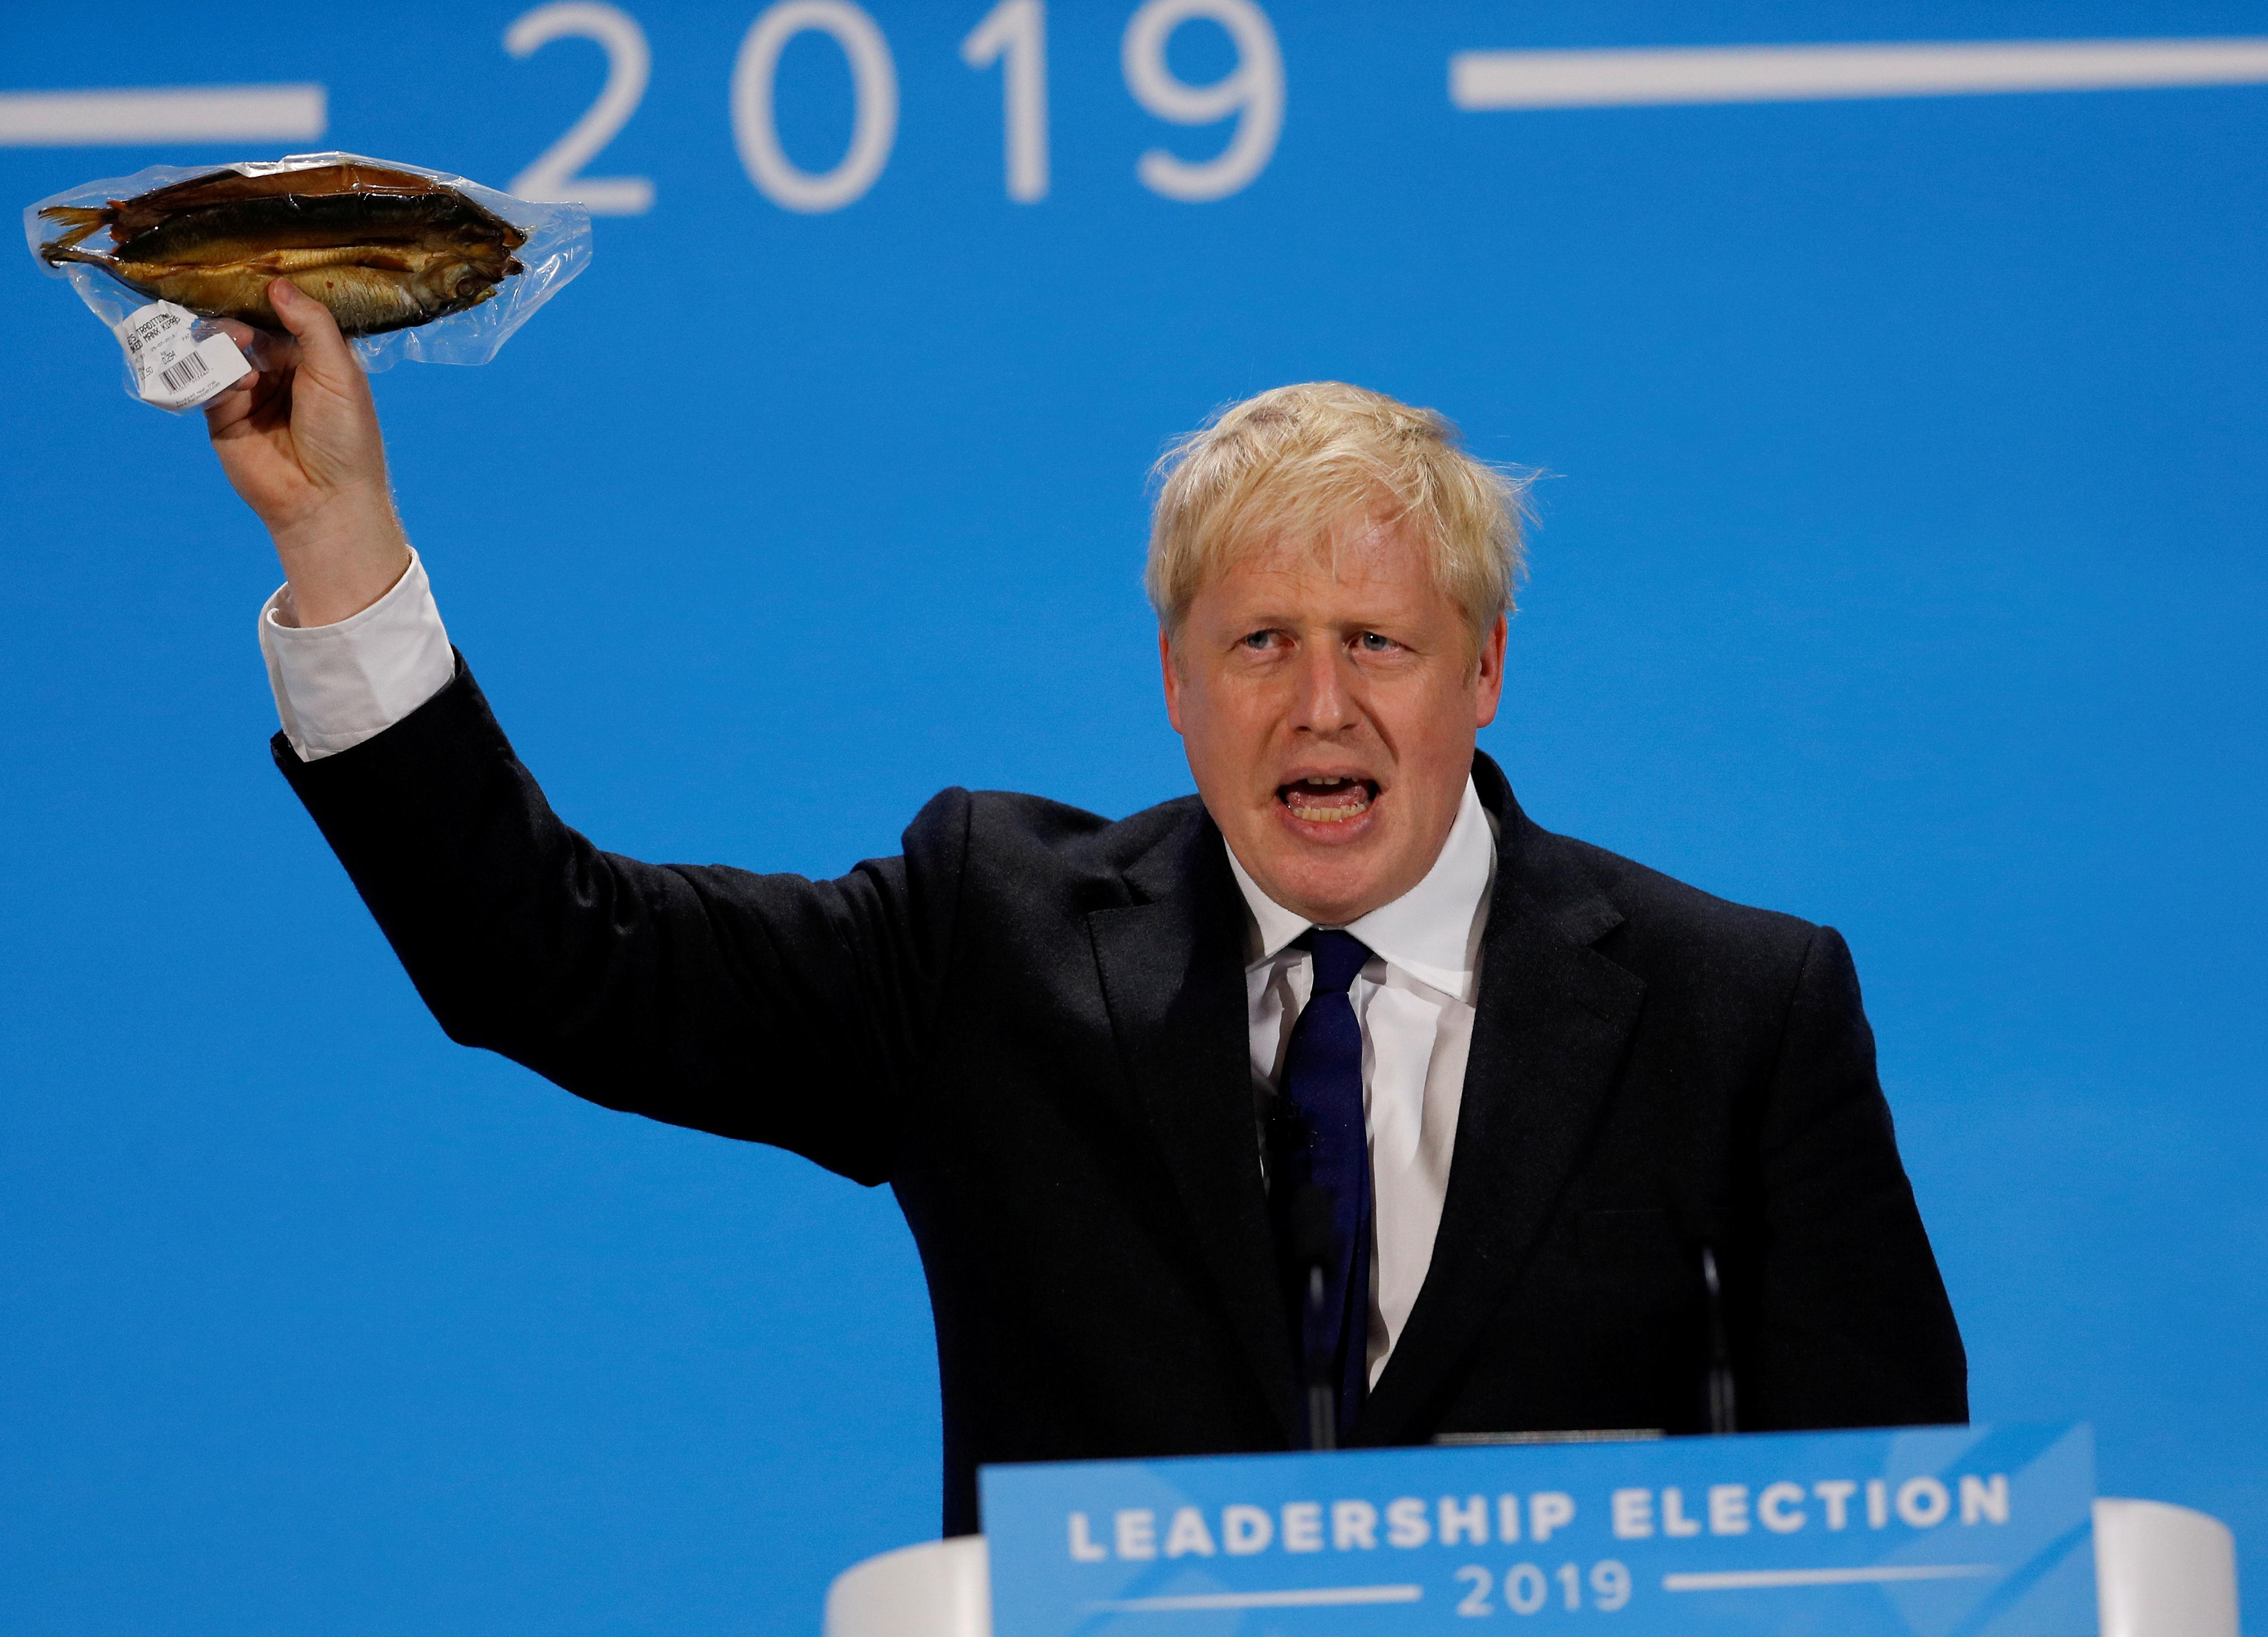 Boris Johnson's magniloquent tongue reaps political gold, linguists say